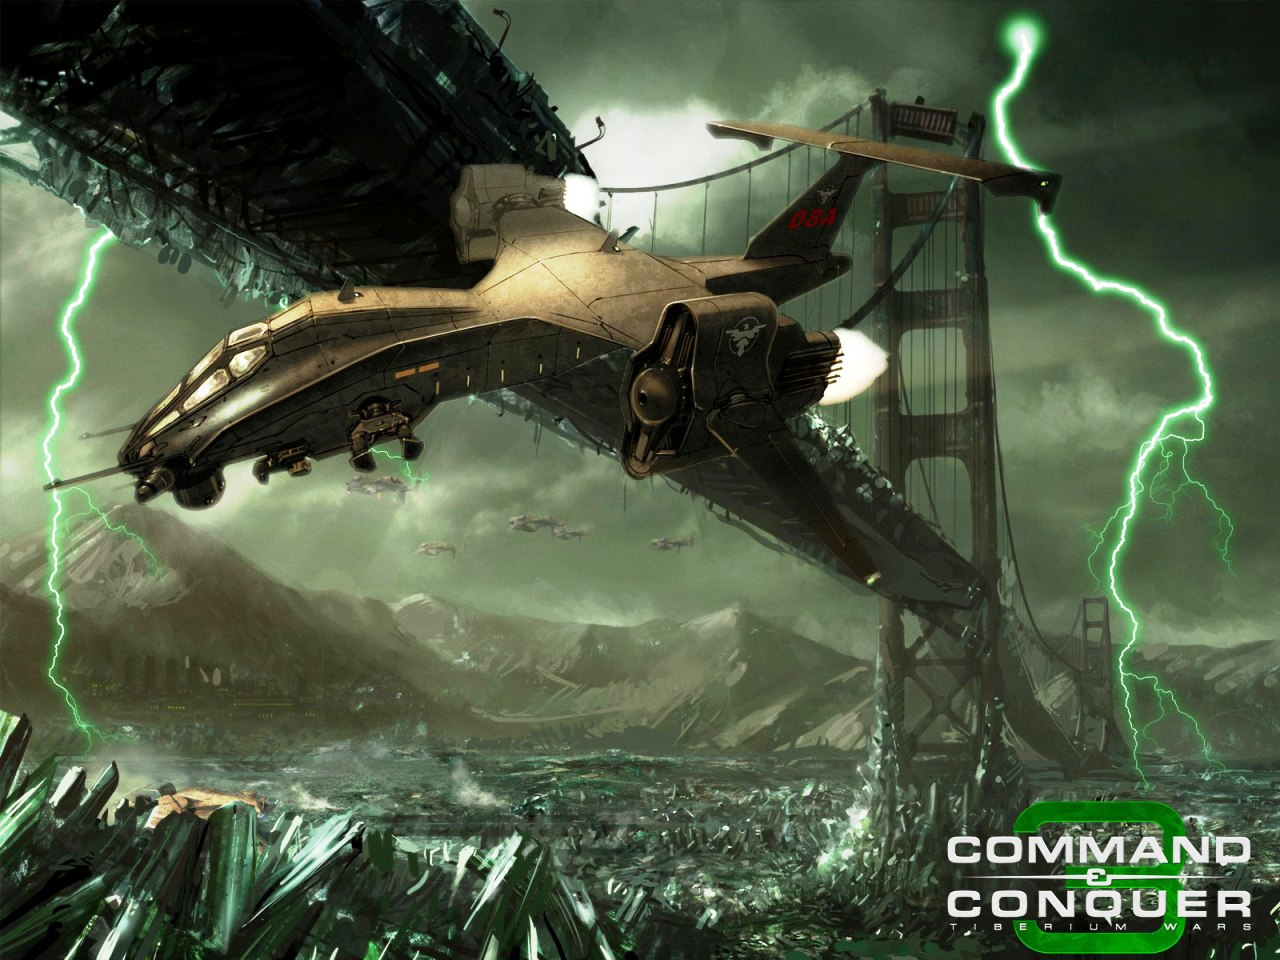 Command And Conquer Wallpaper: Command And Conquer 3 Tiberium Wars